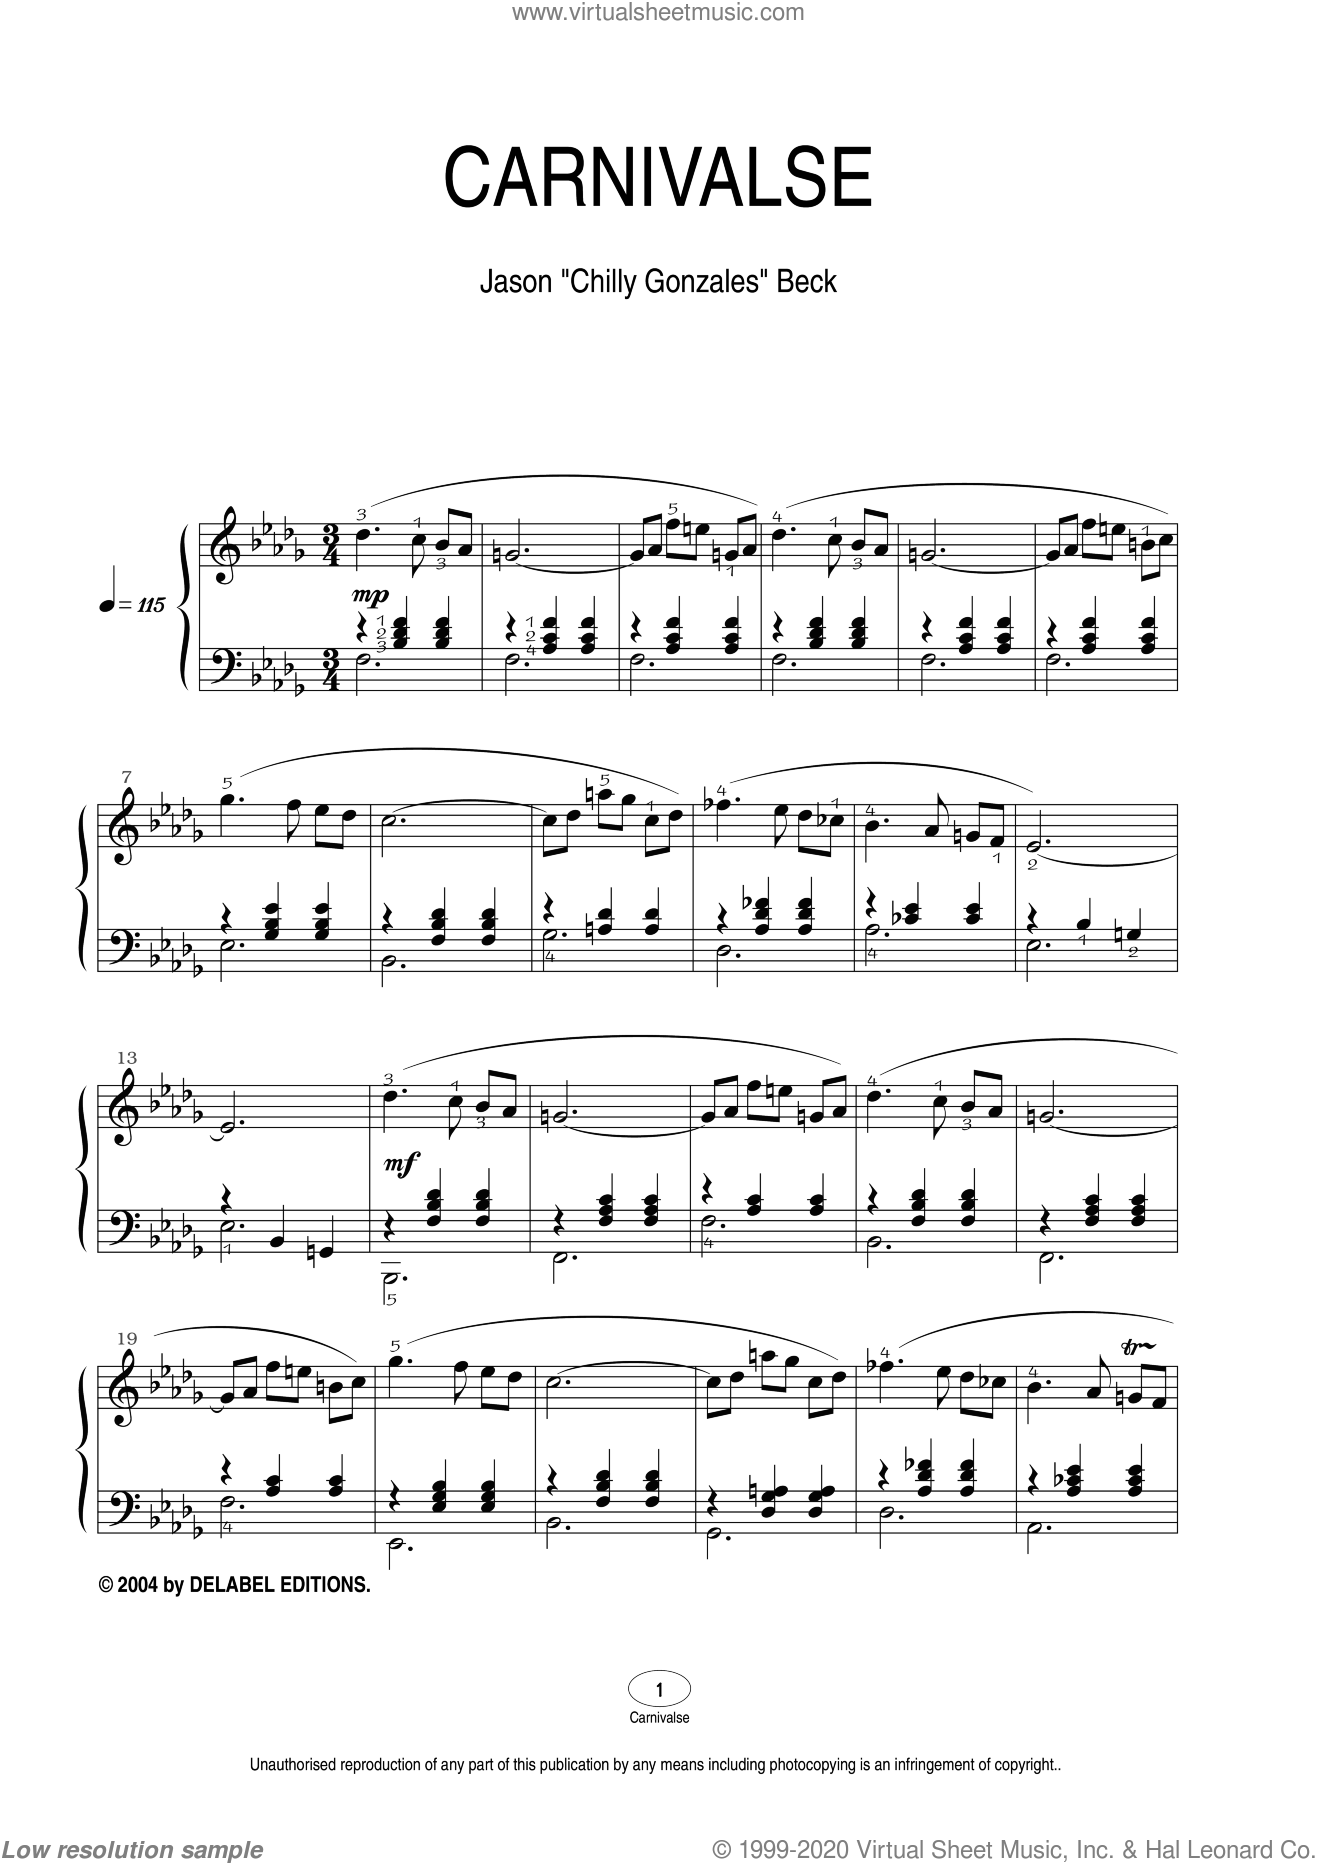 Carnivalse sheet music for piano solo by Chilly Gonzales and Jason Beck. Score Image Preview.